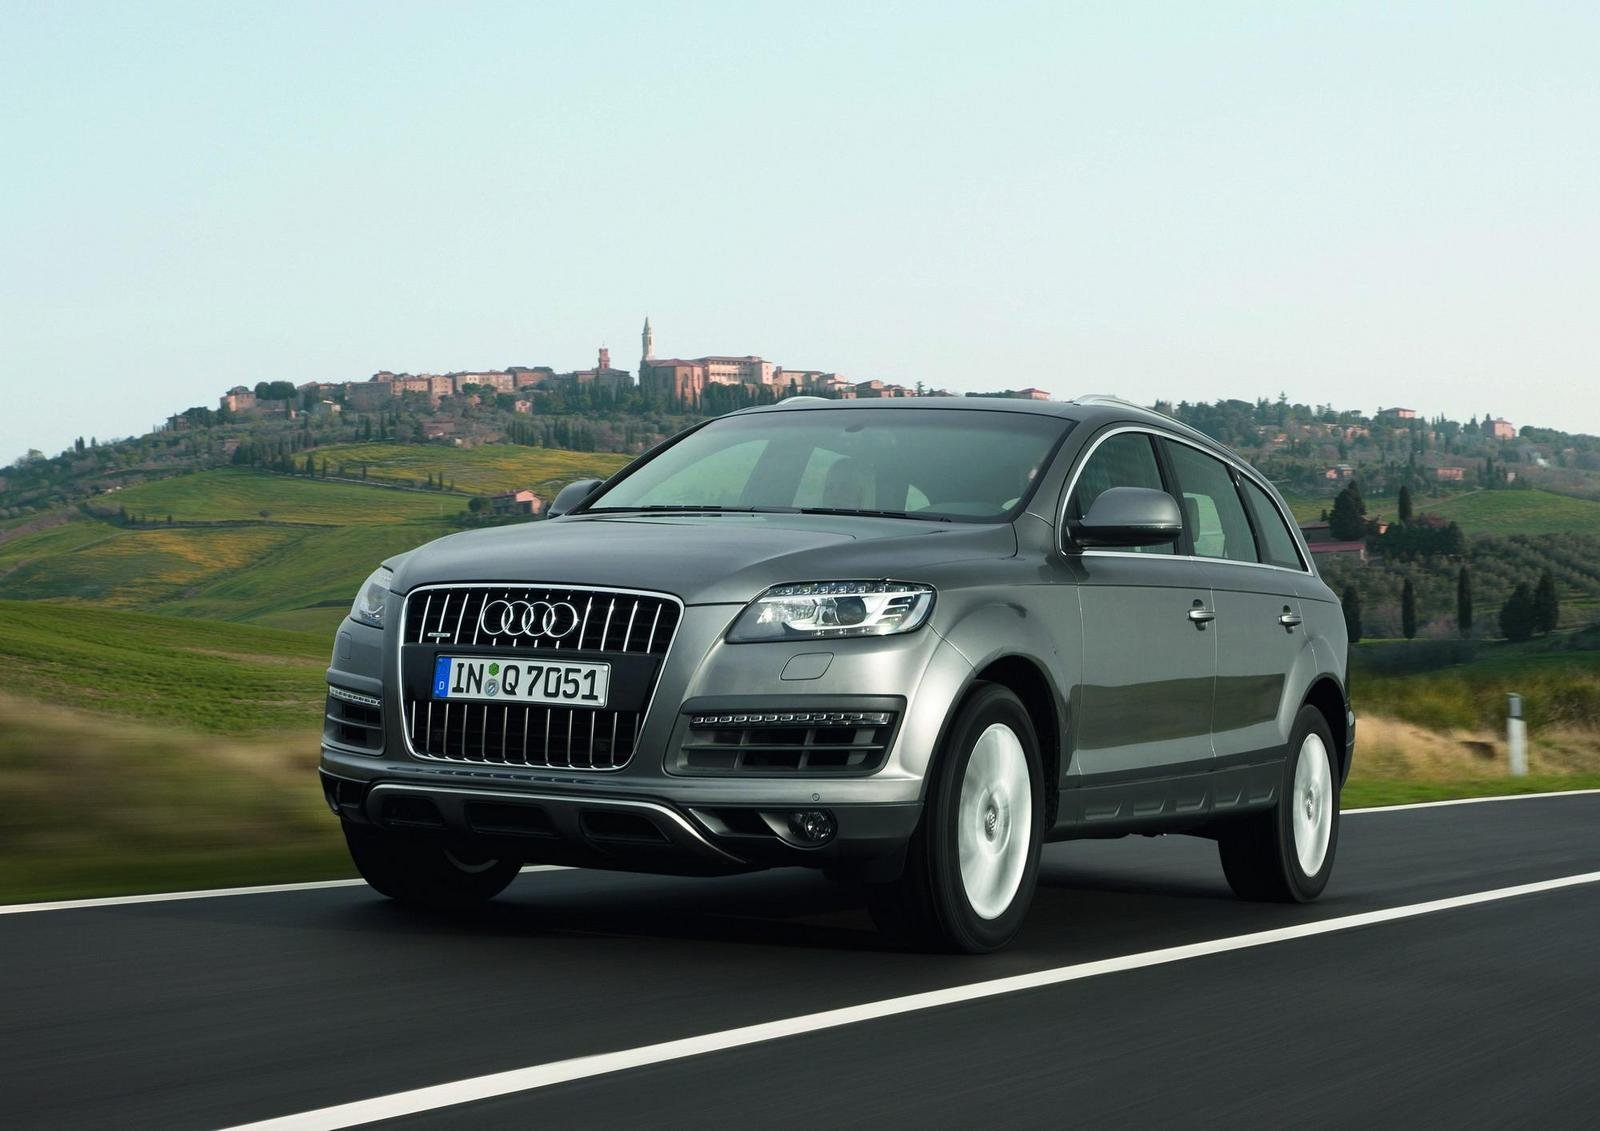 2010 audi q7 picture 295914 car review top speed. Black Bedroom Furniture Sets. Home Design Ideas